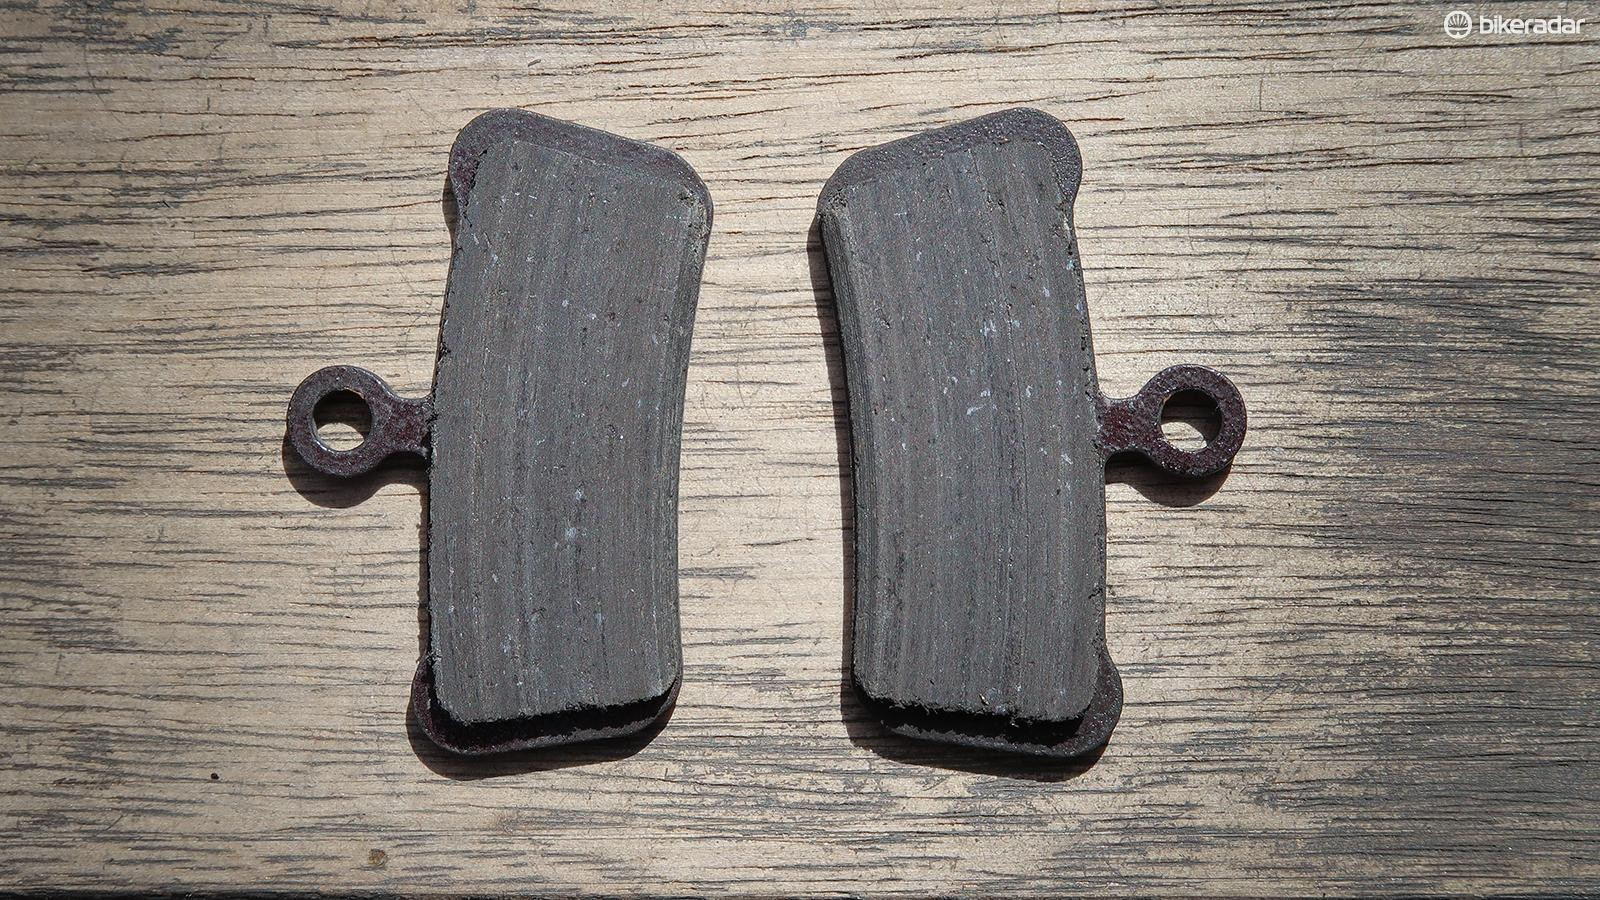 The start of the season is a good time to check your brake pads. If there is less than 1.5mm of material remaining, it's time for a new pair